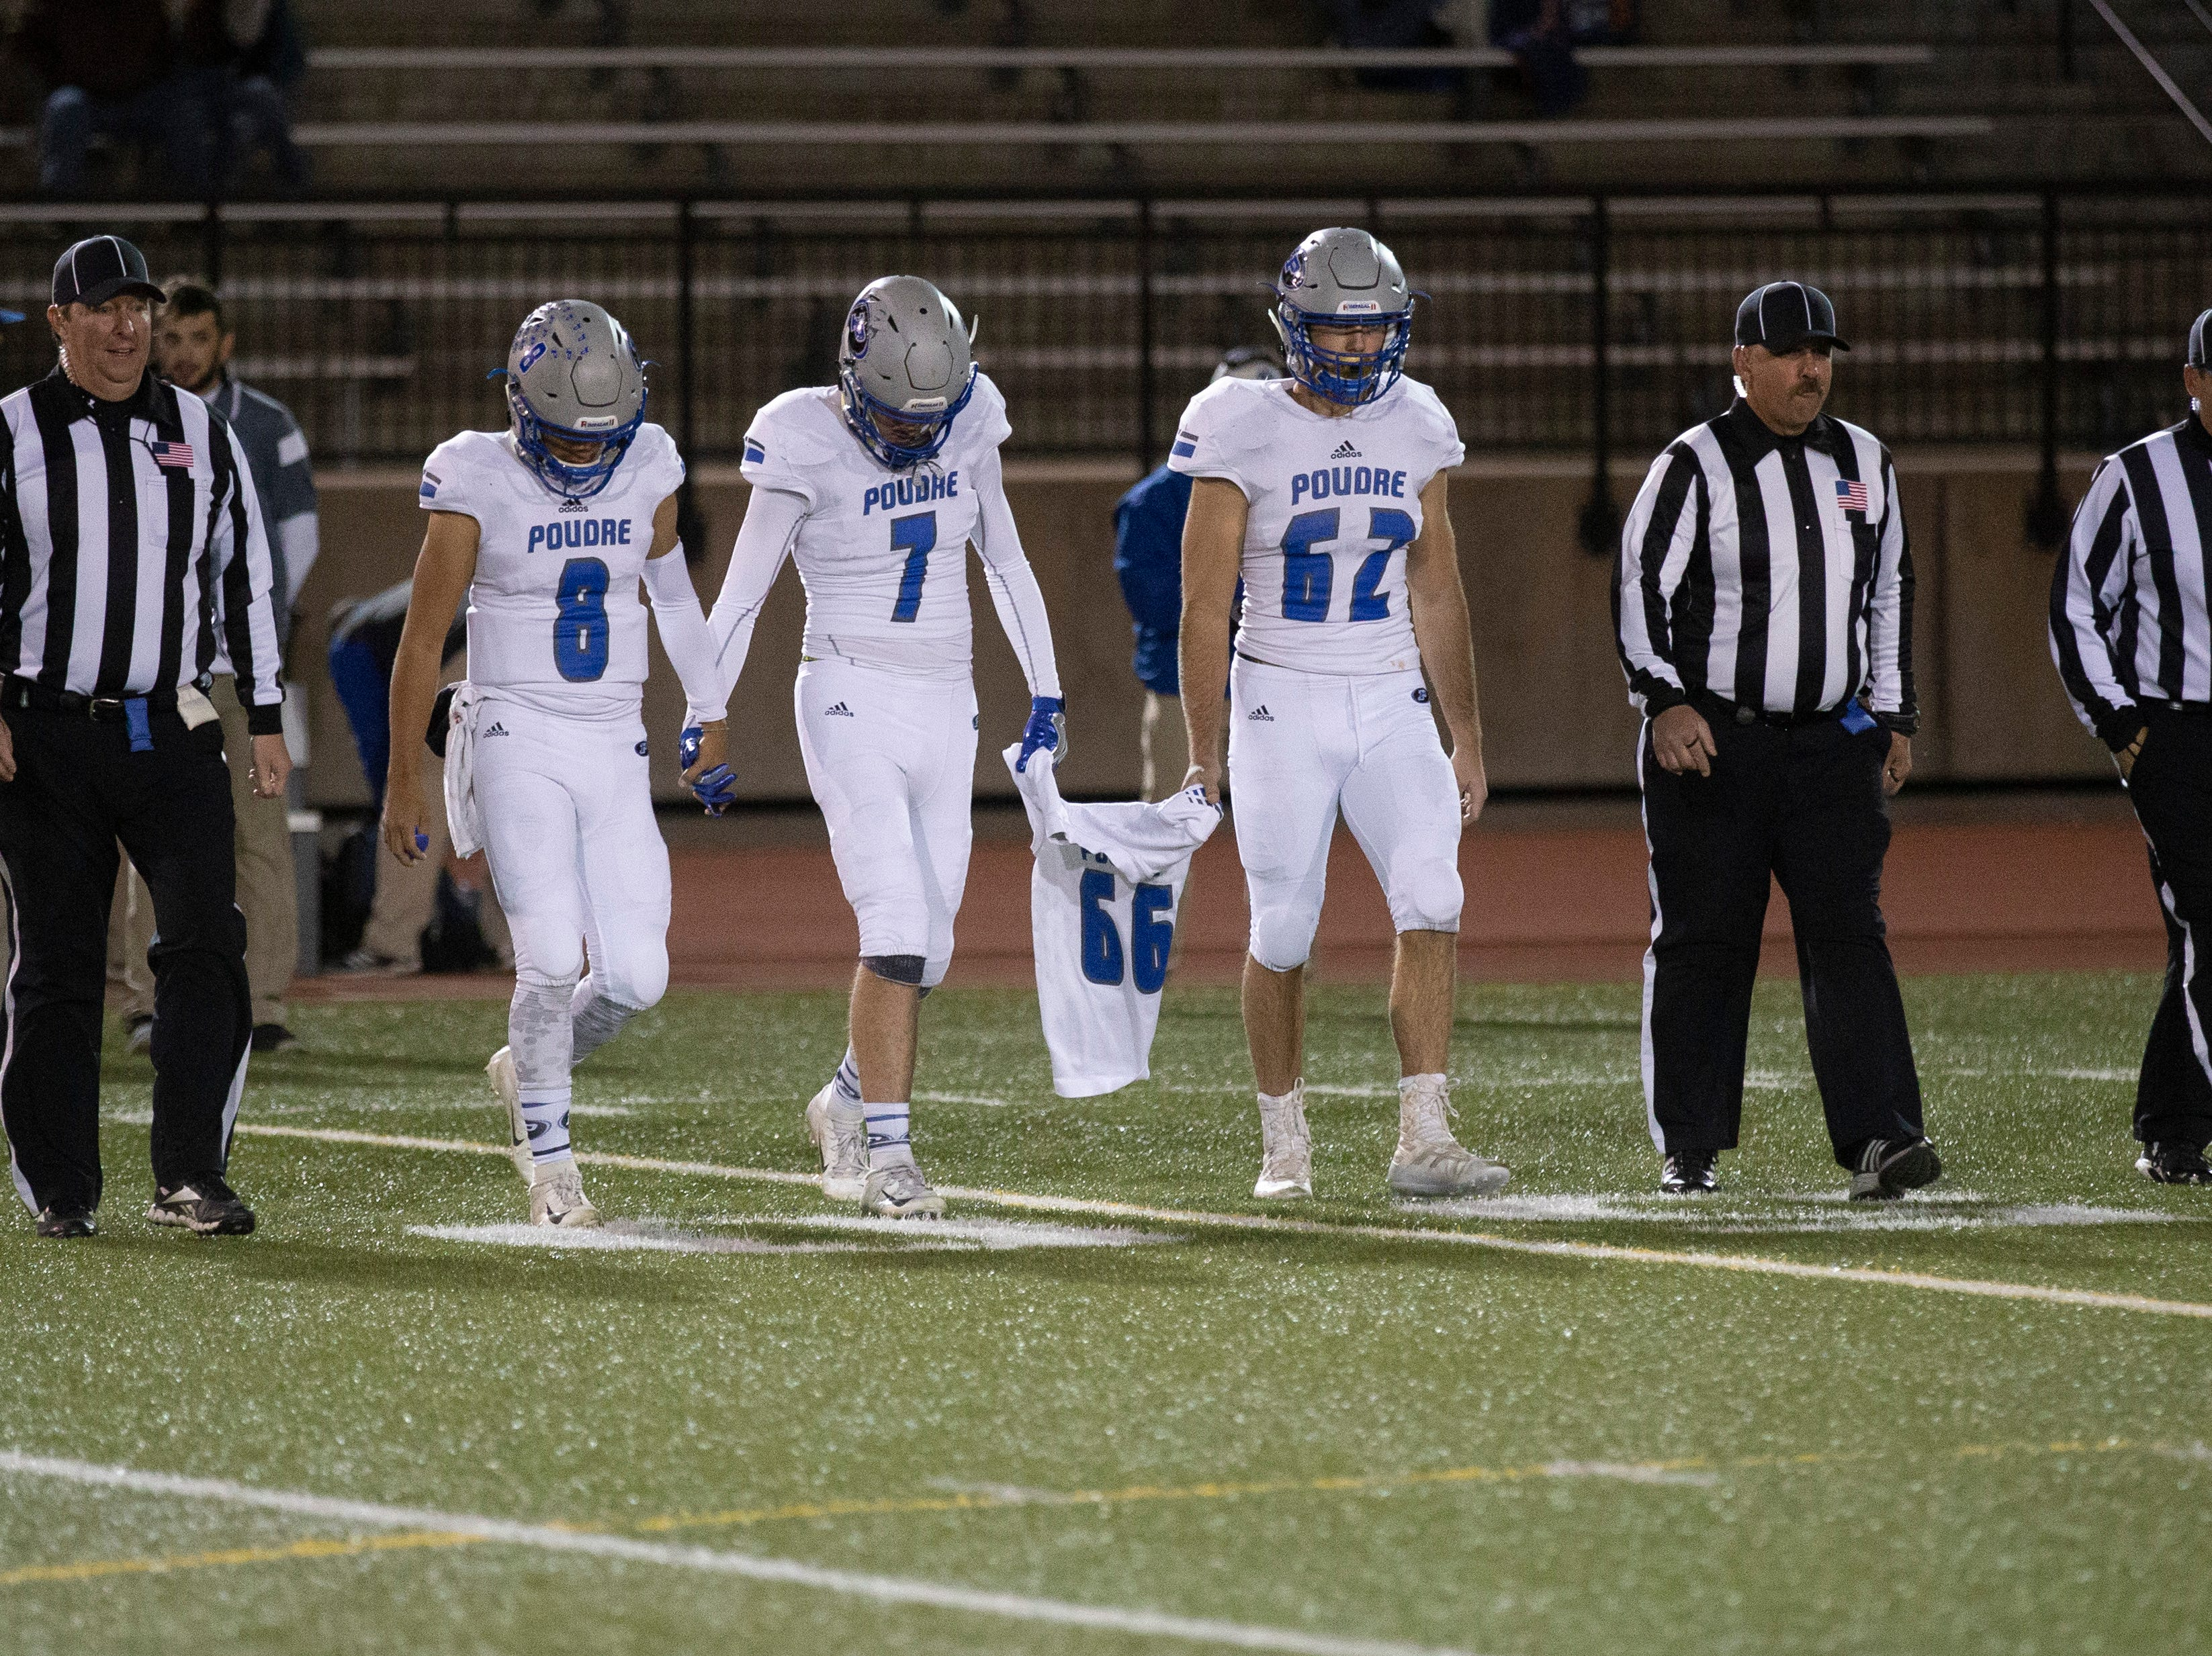 Captains for Poudre High School walk out before the cointoss in an opening round playoff game against Cherokee Trail High School on Friday evening. They're carrying the jersey of Josh Cortez, a Poudre football player who died in a car crash before Poudre's first-round playoff game in 2017.